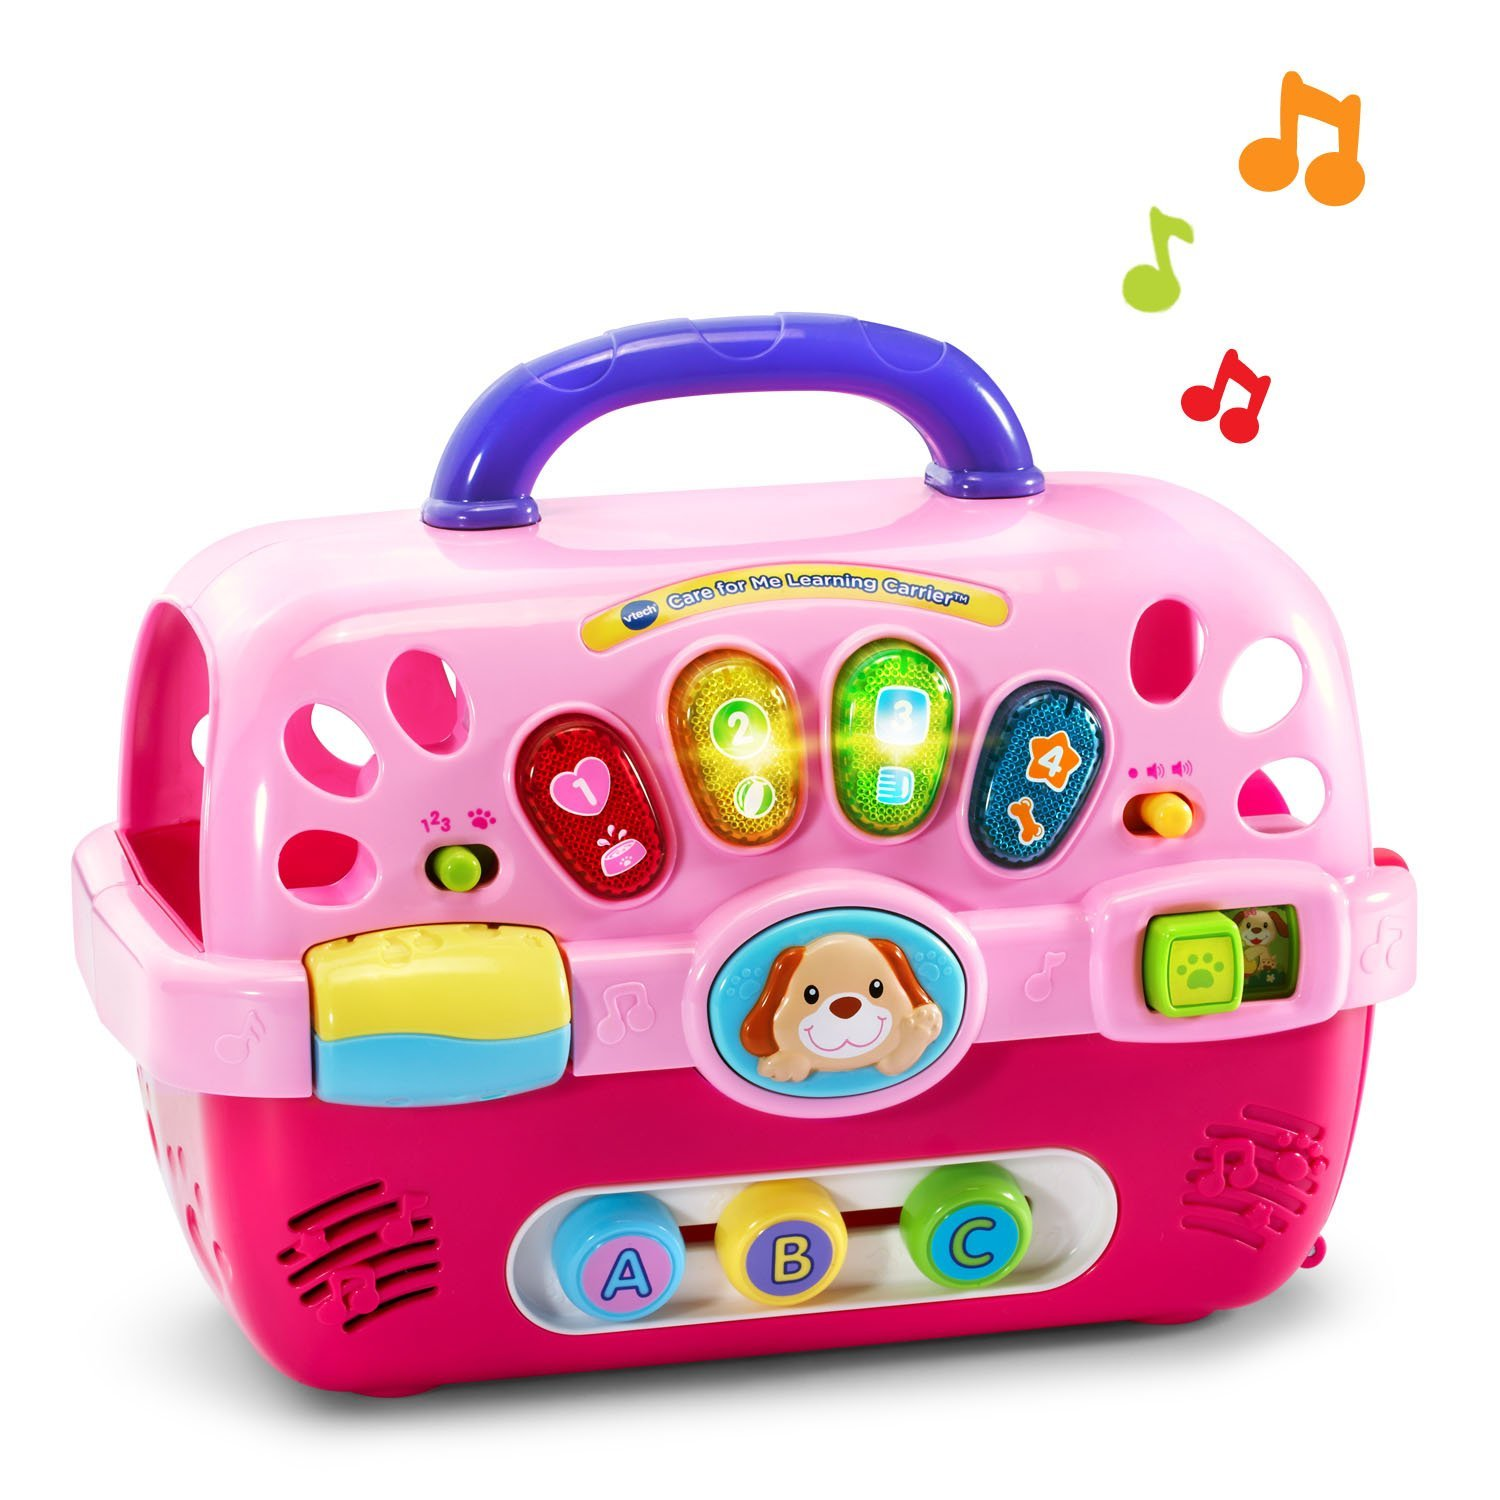 Amazon.com: VTech Care for Me Learning Carrier Toy: Toys & Games